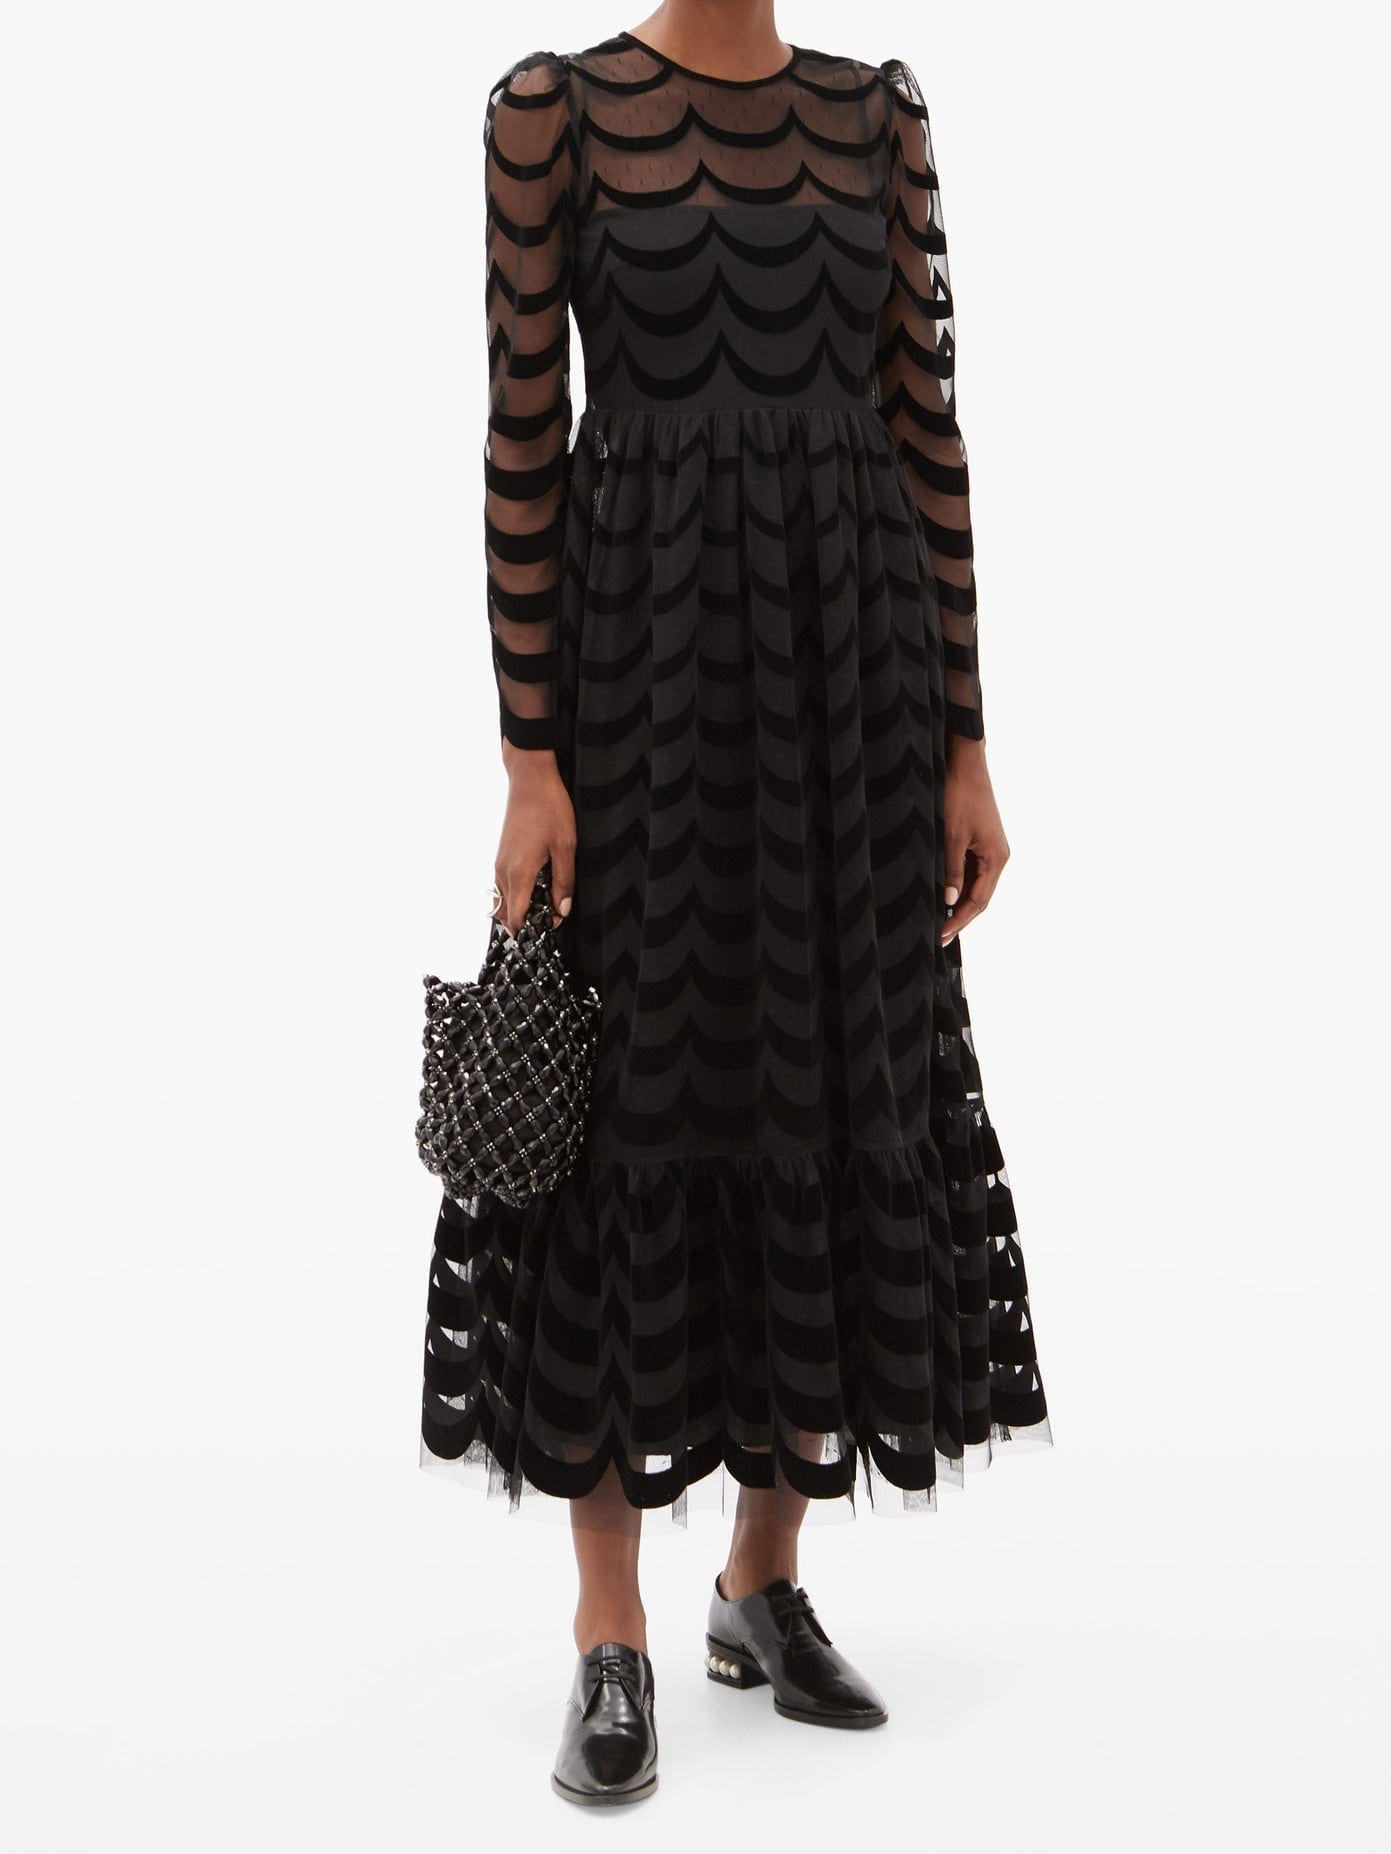 REDVALENTINO Scallop-flocked Swiss-dot Tulle Dress